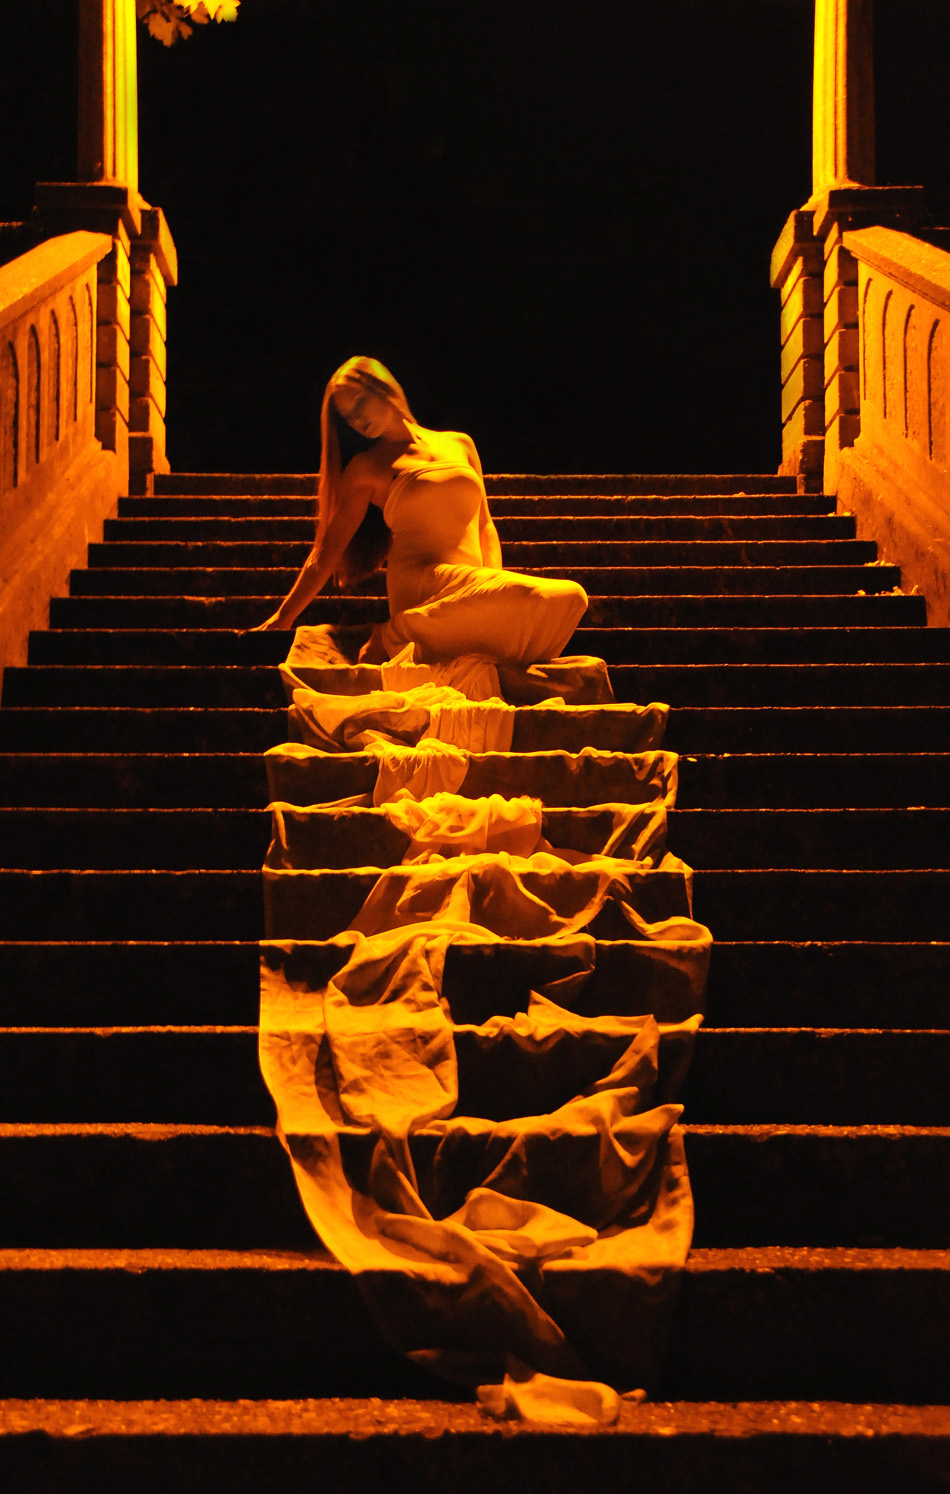 Backstreet Photography - Golden Staircase/midnight shoot